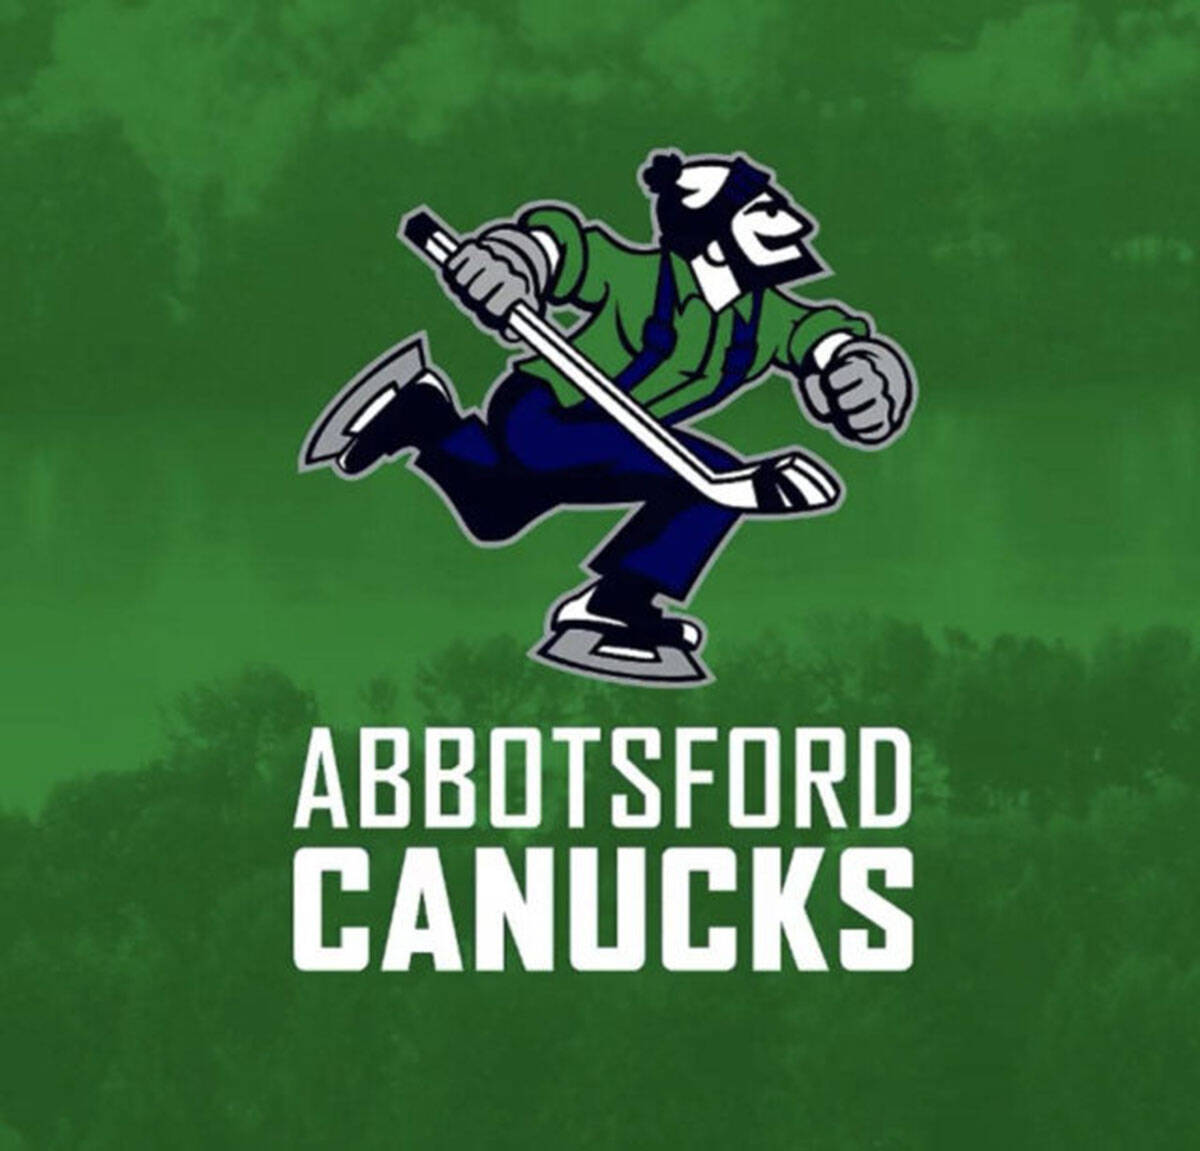 The Abbotsford Canucks had 14 players sent to them by the Vancouver Canucks on Sunday.